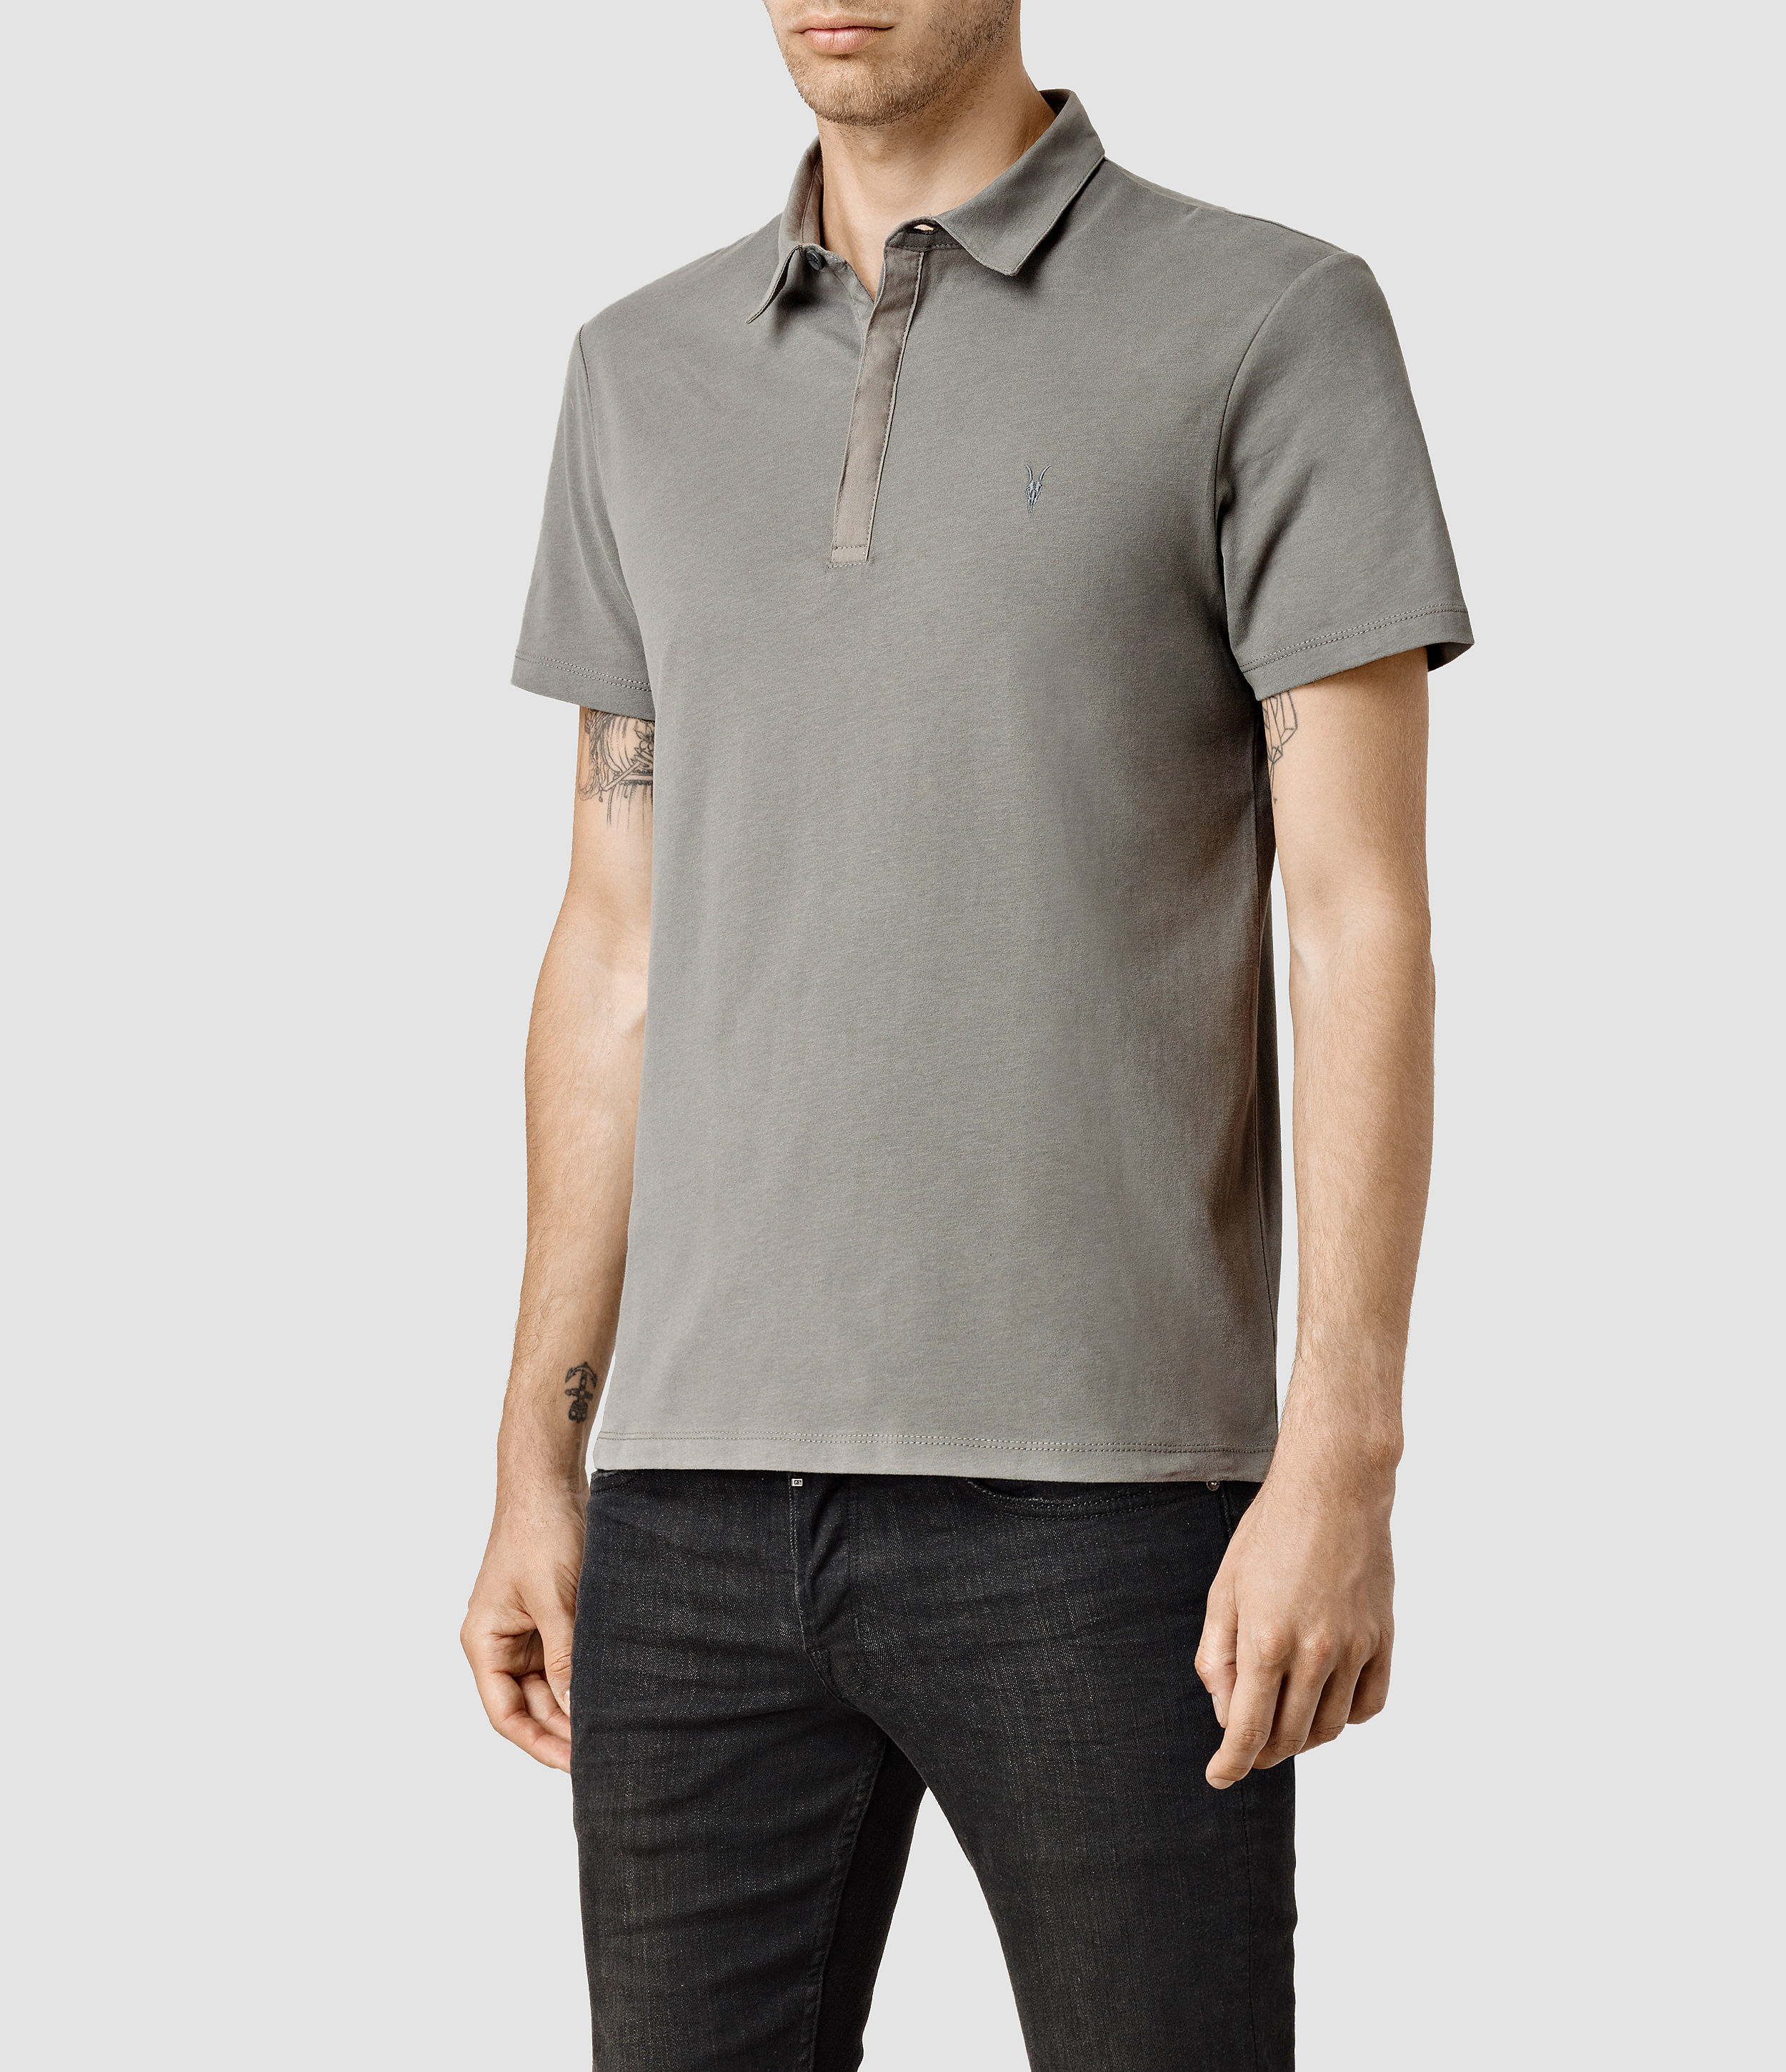 Allsaints brace polo shirt in gray for men lyst for All saints polo shirt